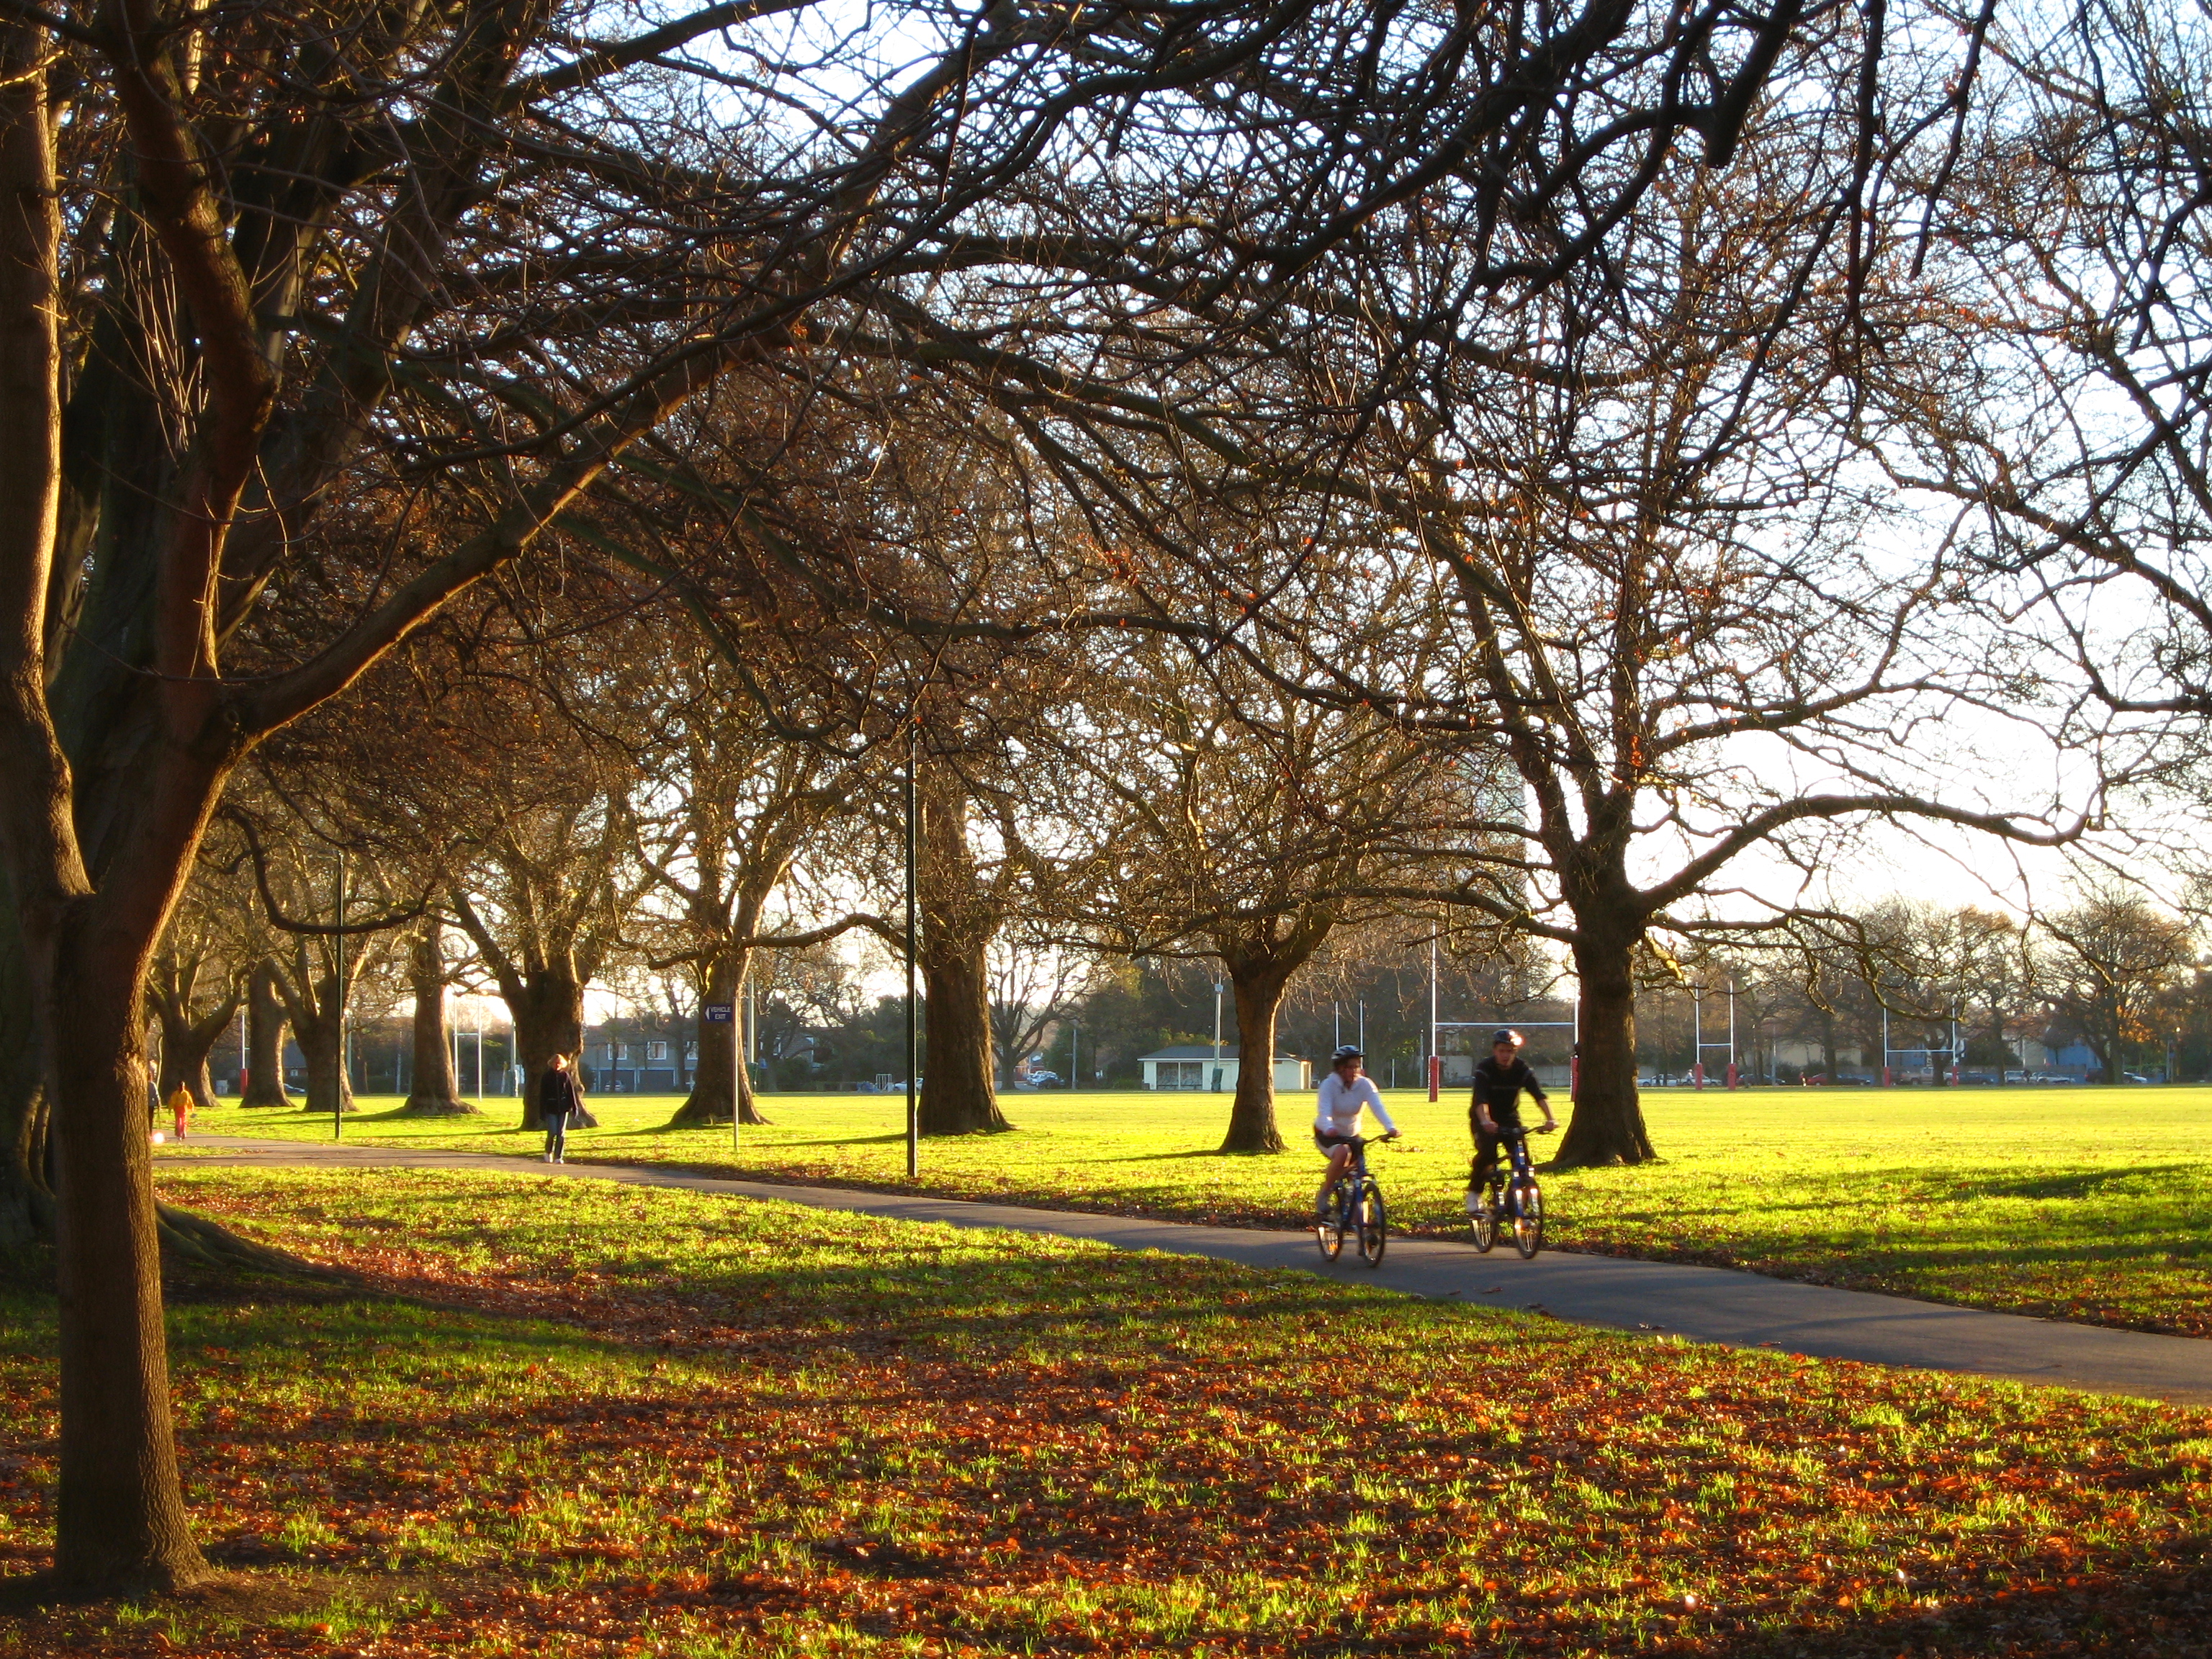 Christchurch's Hagley Park in better times